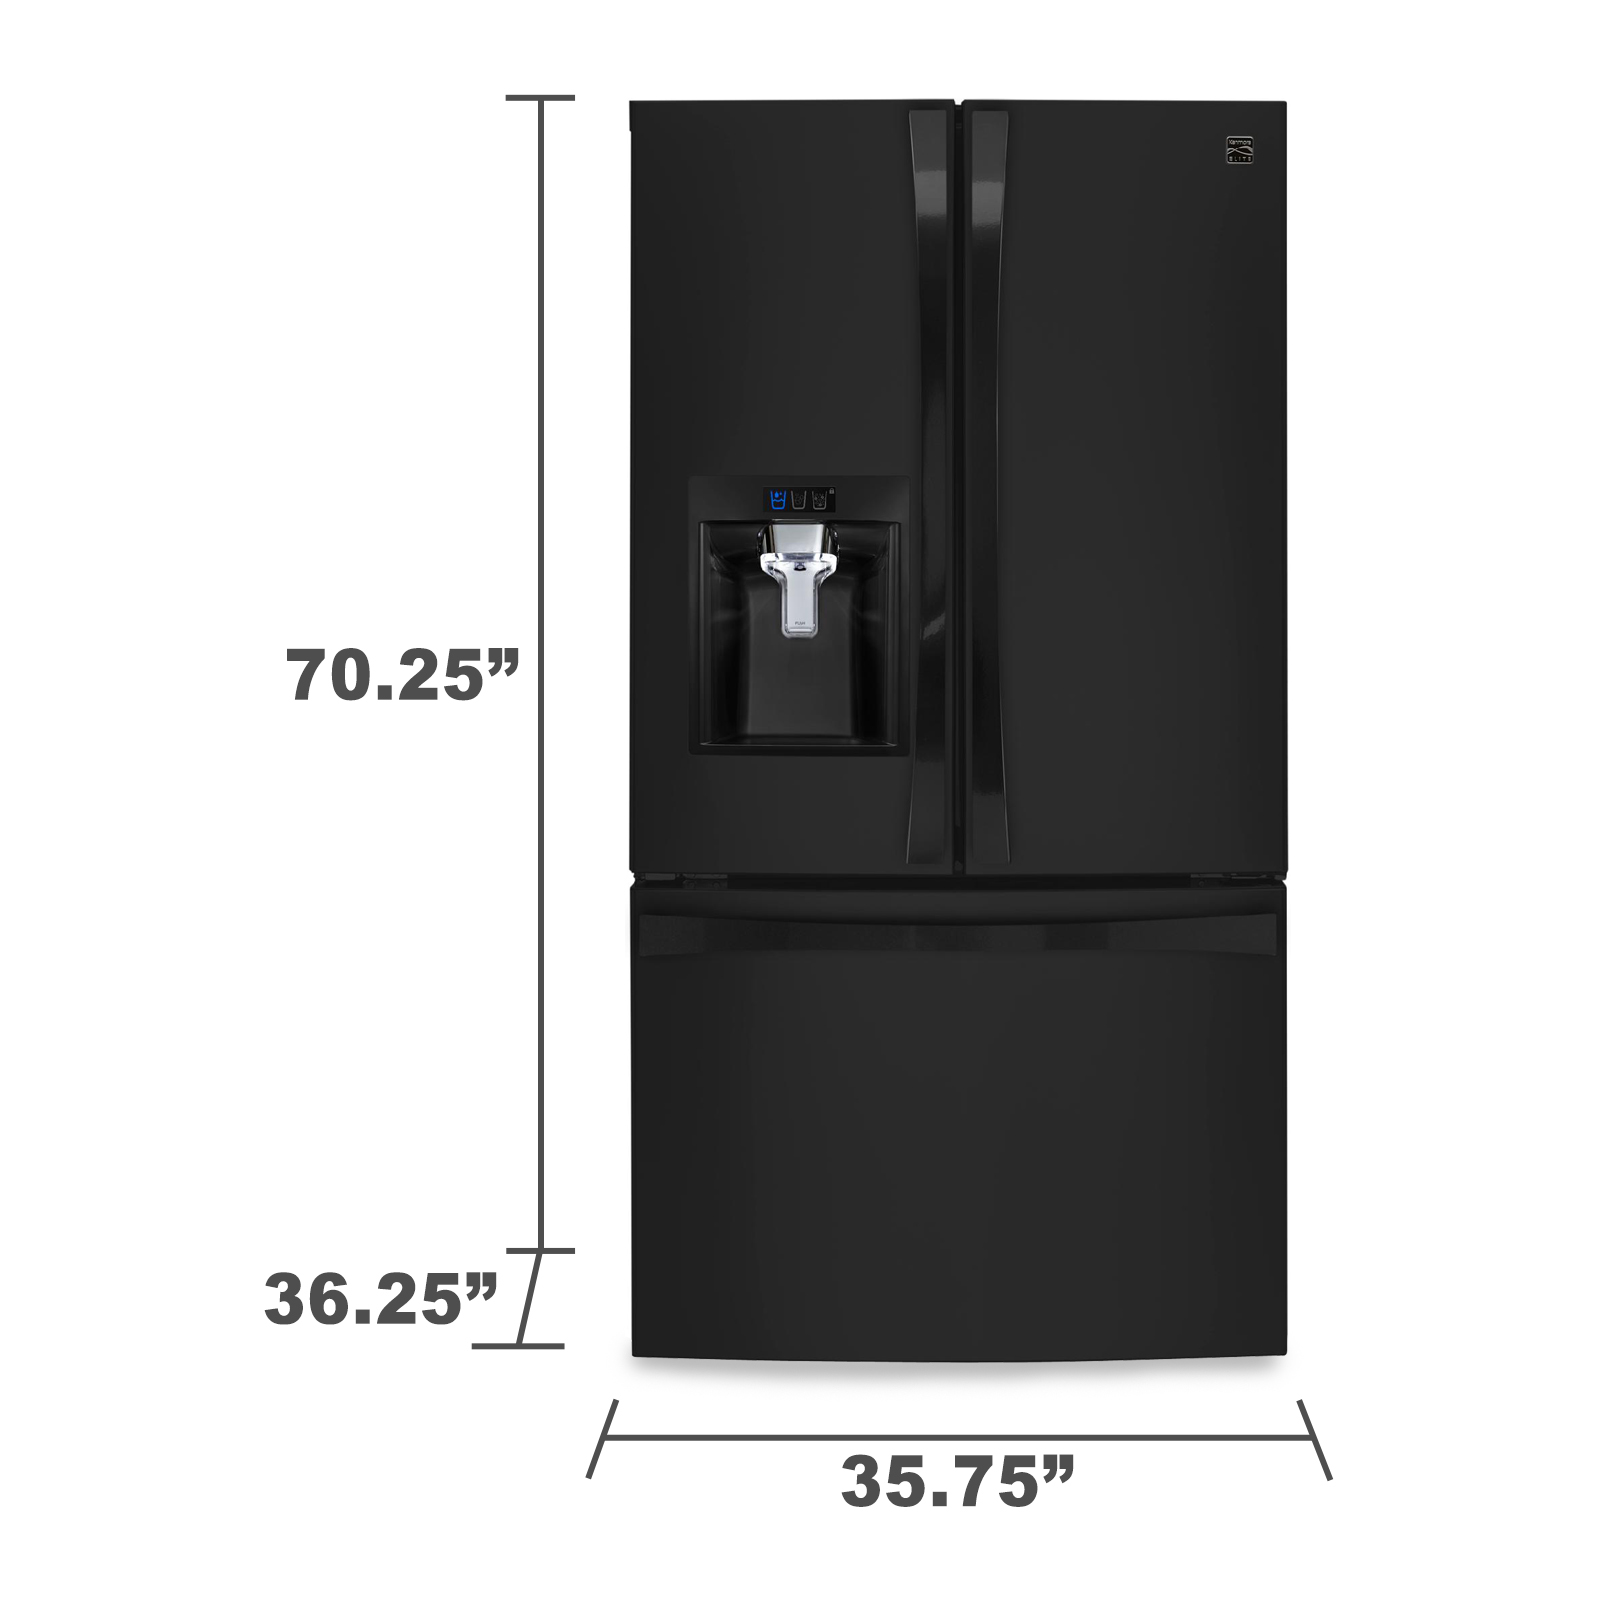 Kenmore Elite 74029 29.8 cu. ft. French Door Bottom-Freezer Refrigerator